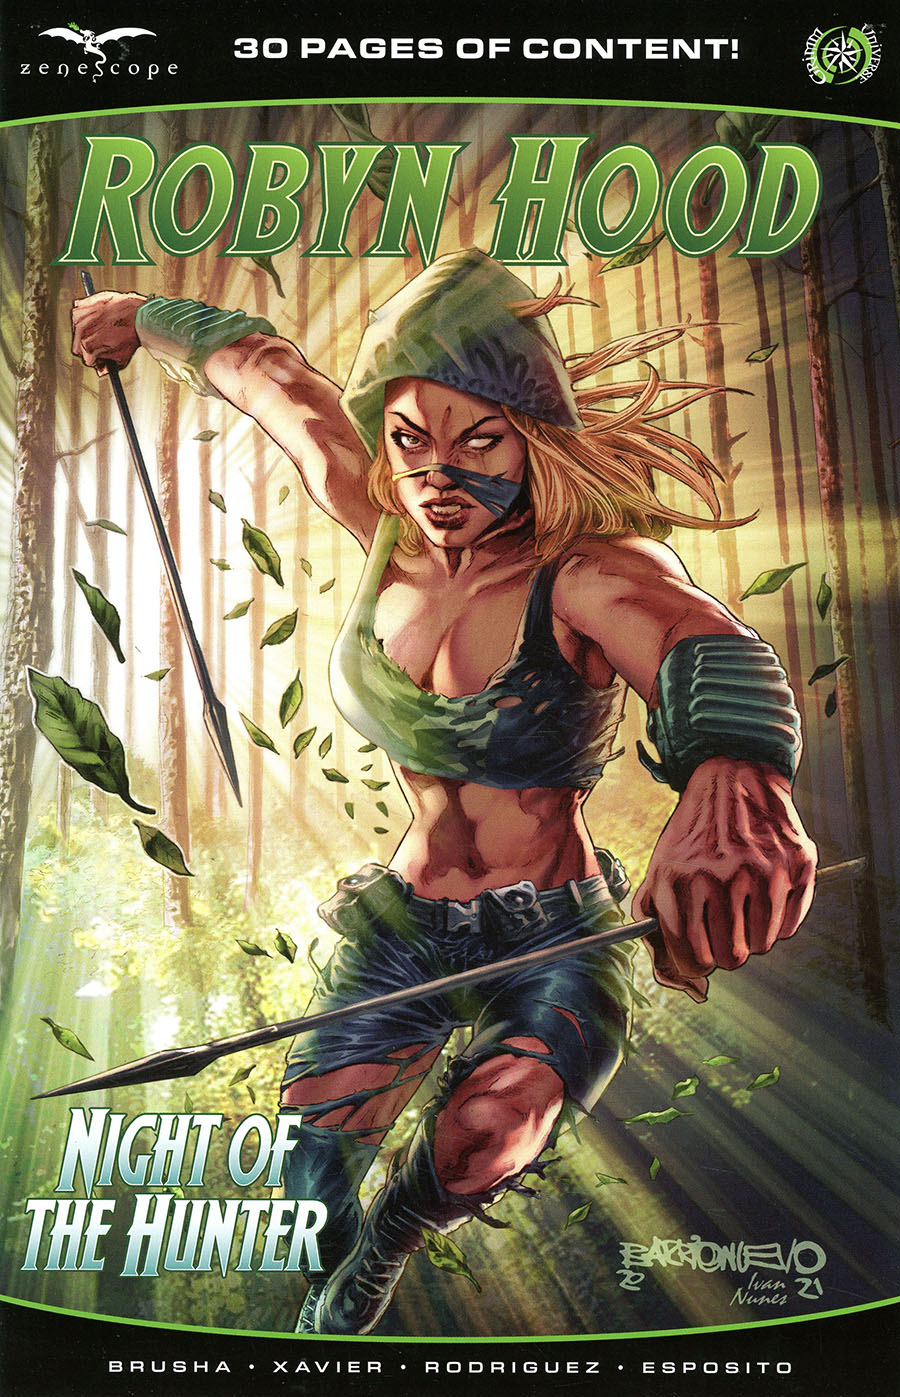 Grimm Fairy Tales Presents Robyn Hood Hunted #1 (One Shot) Cover A Al Barrionuevo